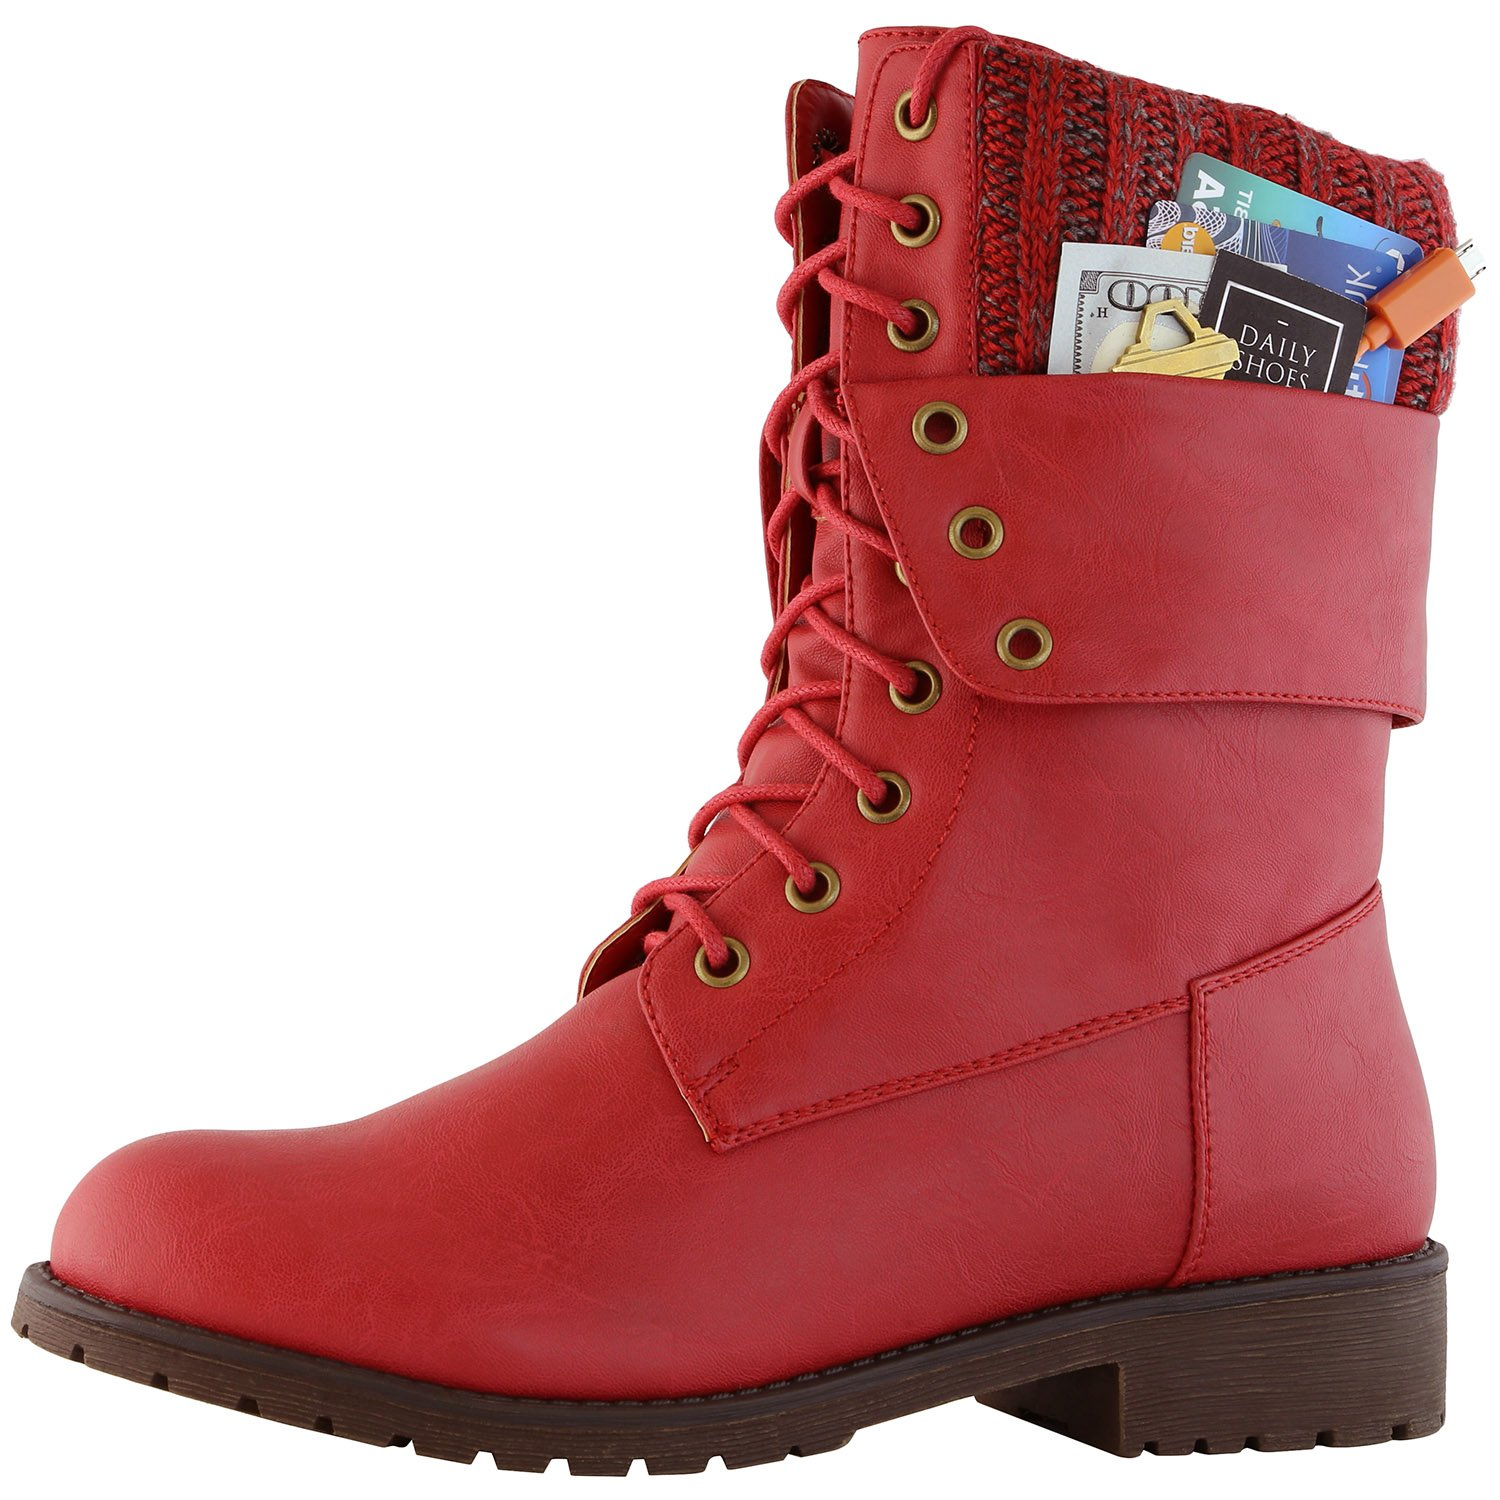 DailyShoes Natalie 99 Pocket Ankle Boot with Sweater Top Combat Boots Mid Calf Low Heel Lace Up Zip Cuff Knitted Backpacking Fashion Winter Flat Heels Shoes for Women Natalie-99 Red Pu 6 by DailyShoes